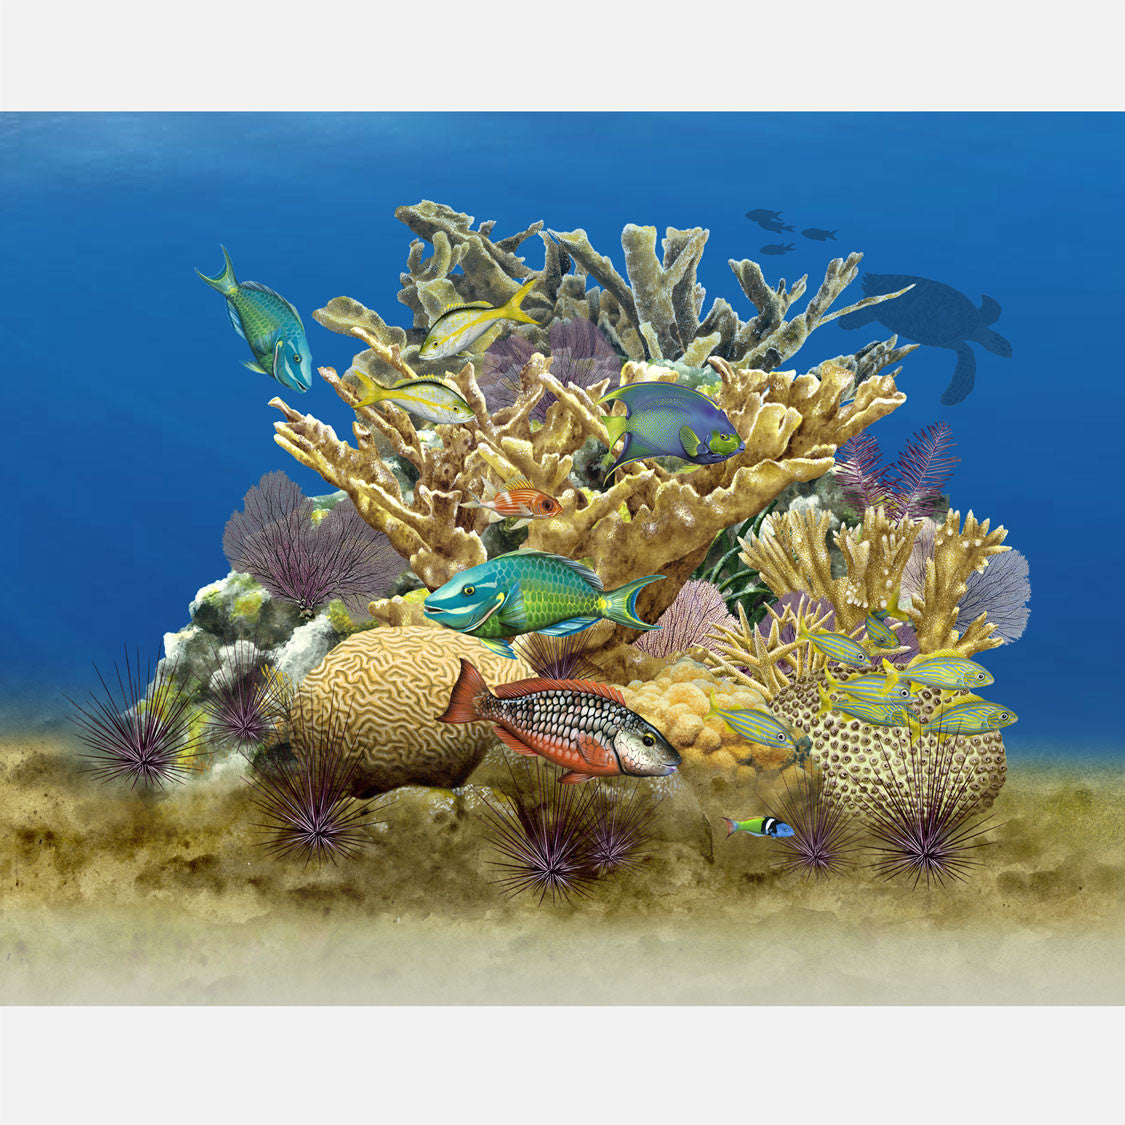 This beautiful, highly detailed illustration is of life on an Atlantic coral reef. The art features several species of reef fish and corals.